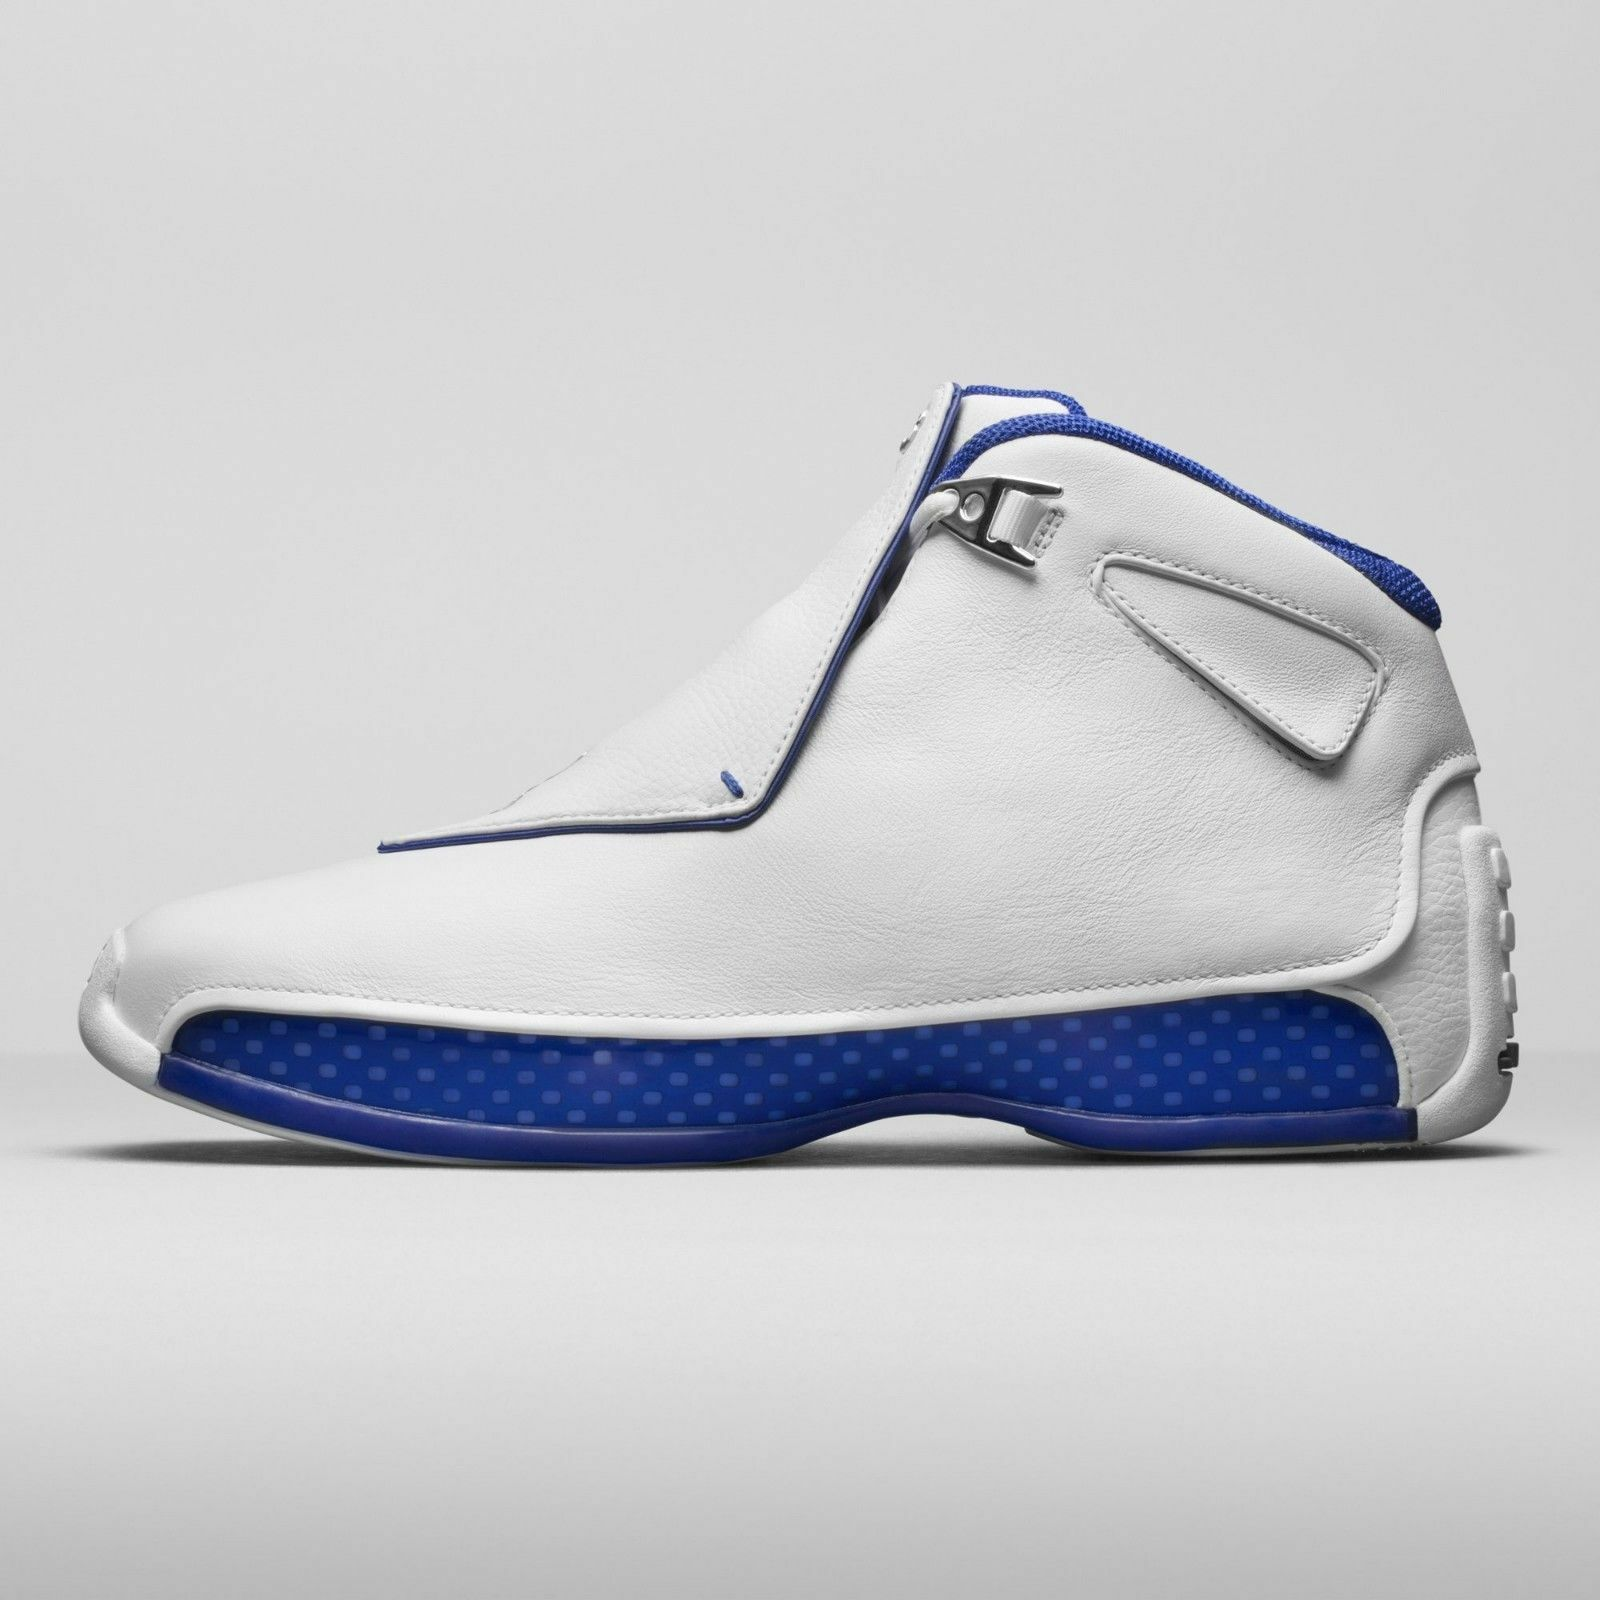 2018 Nike Air Jordan 18 XVIII Retro White Royal Blue Size 9. AA2494-106